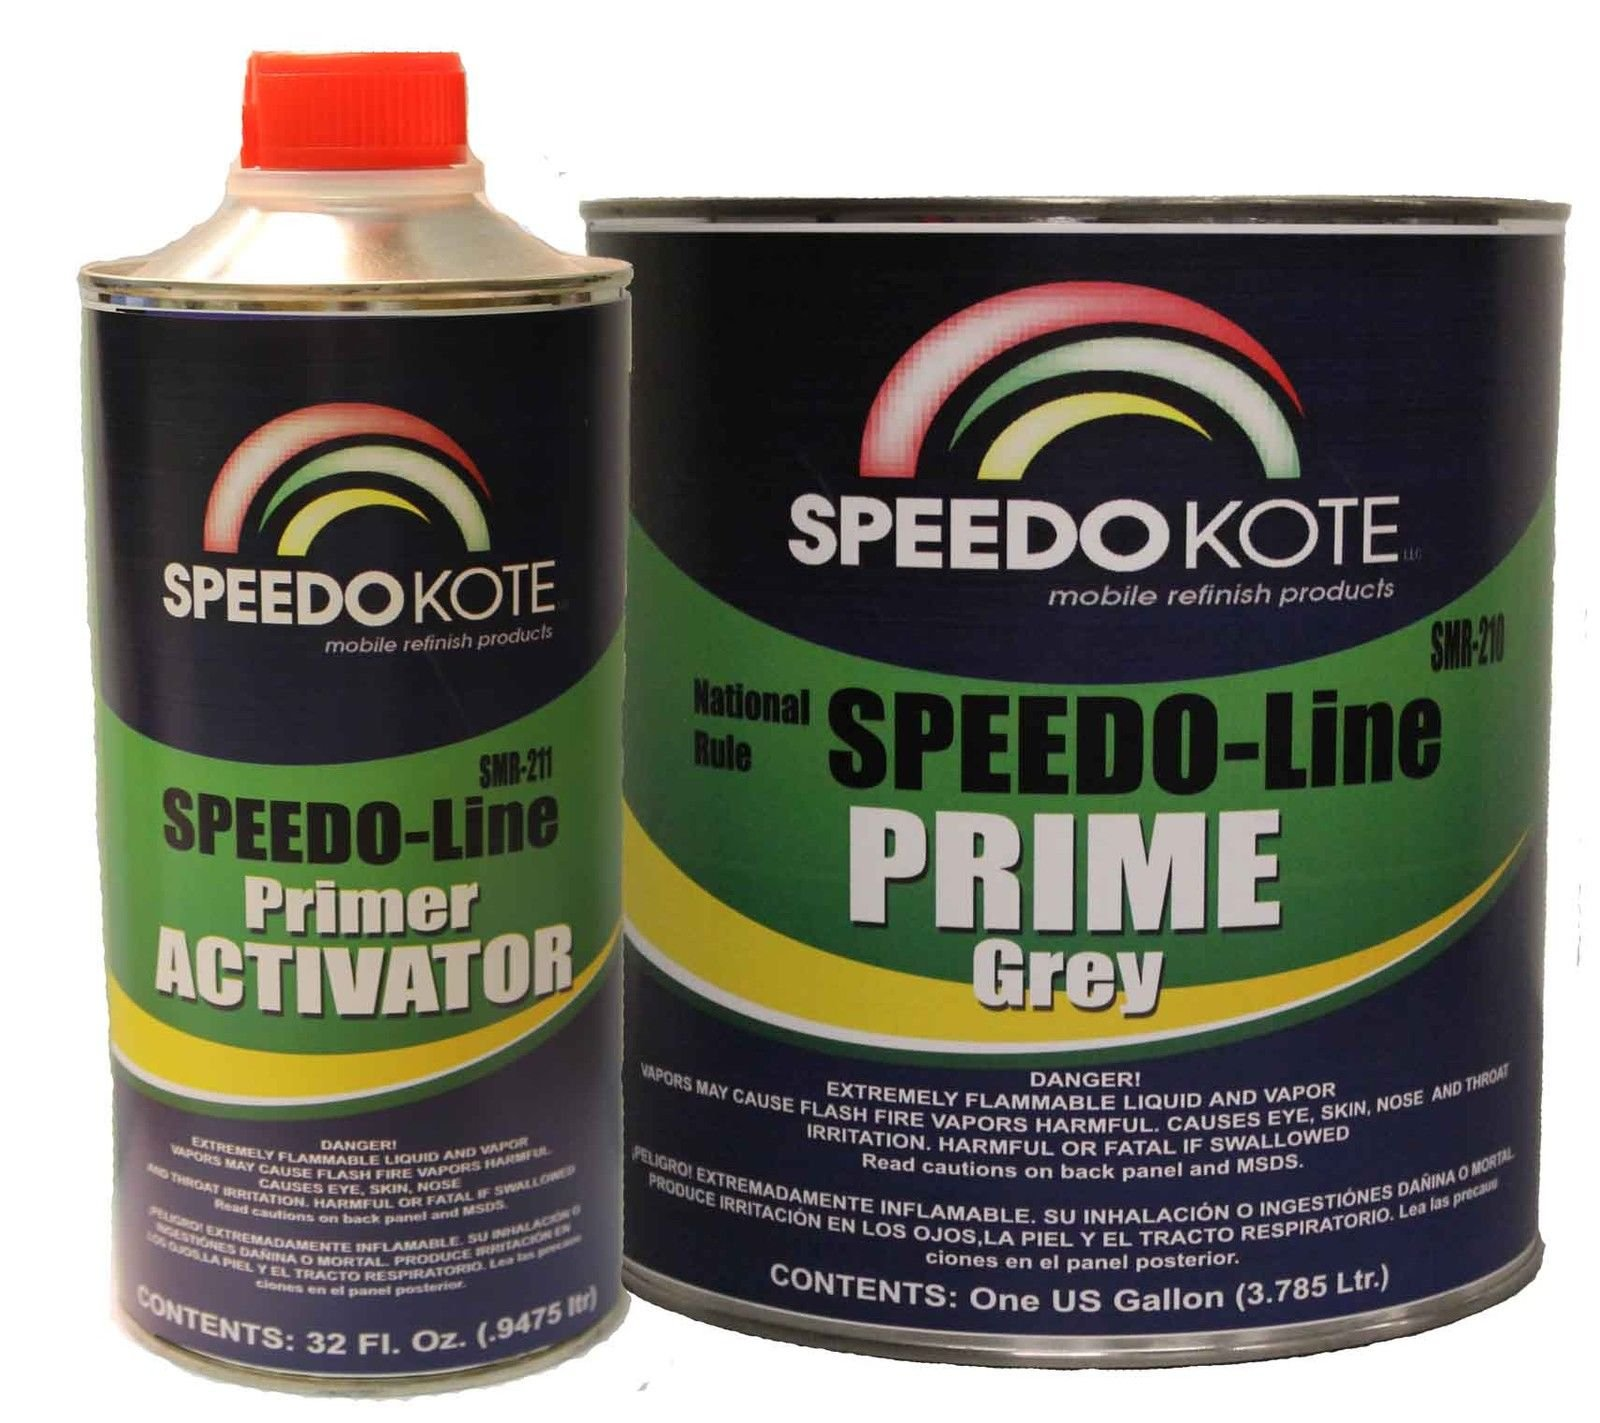 SpeedoKote SMR-210/211 - Automotive High Build 2K Urethane Primer Gray Gallon Kit, Fast Dry, Easy Sanding, Activator is included by Speedokote